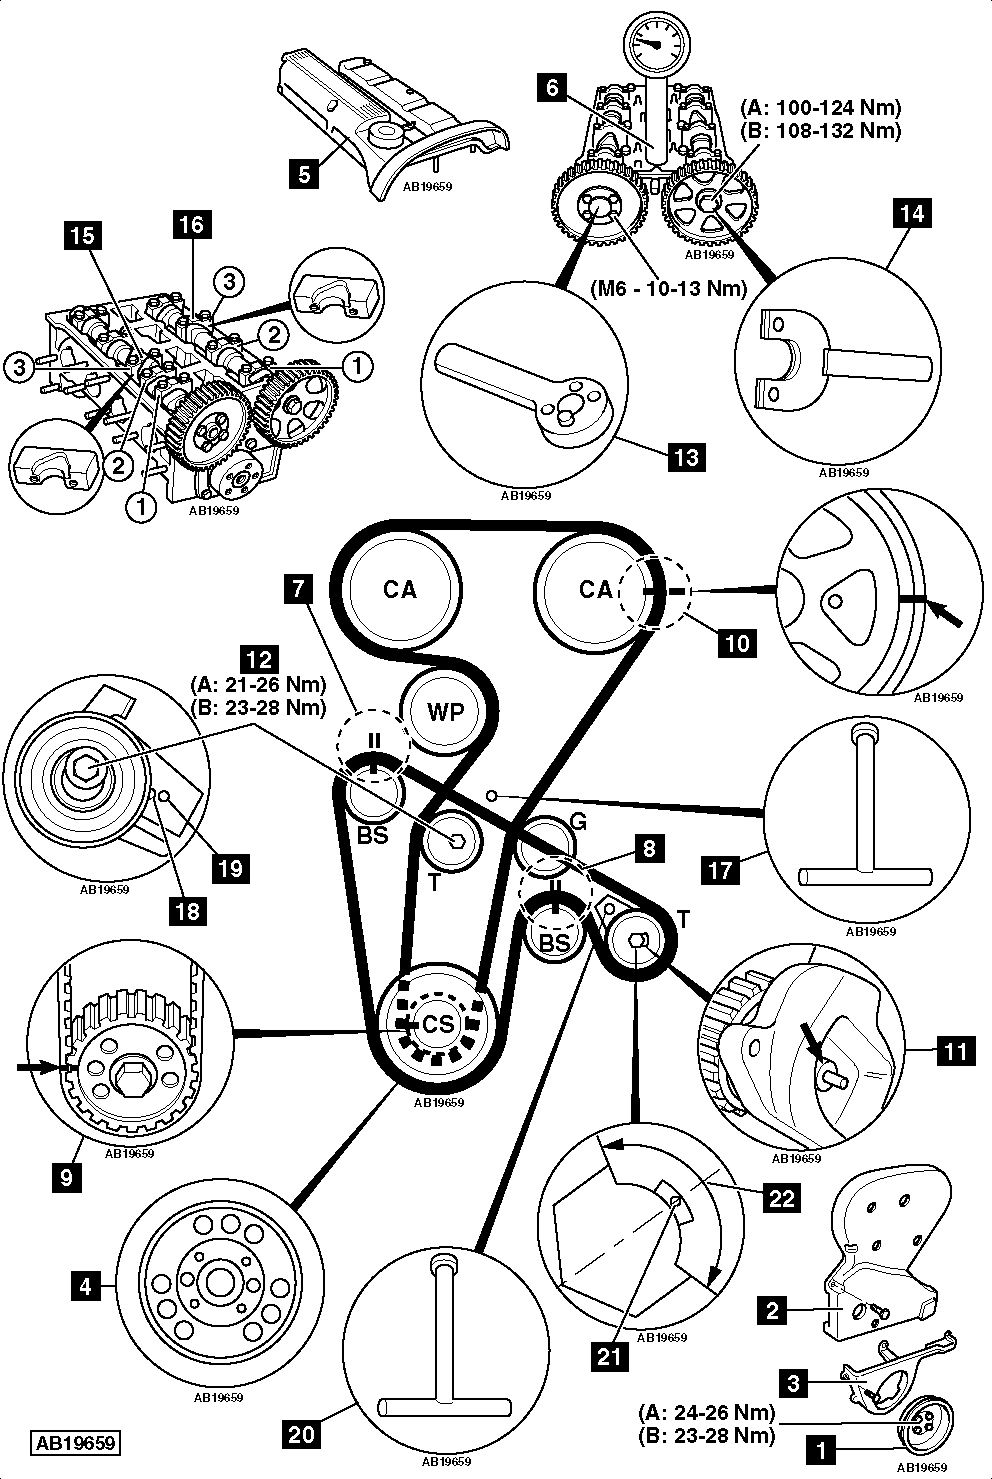 5 Cylinder Engine Diagram on 2003 nissan pathfinder water pump